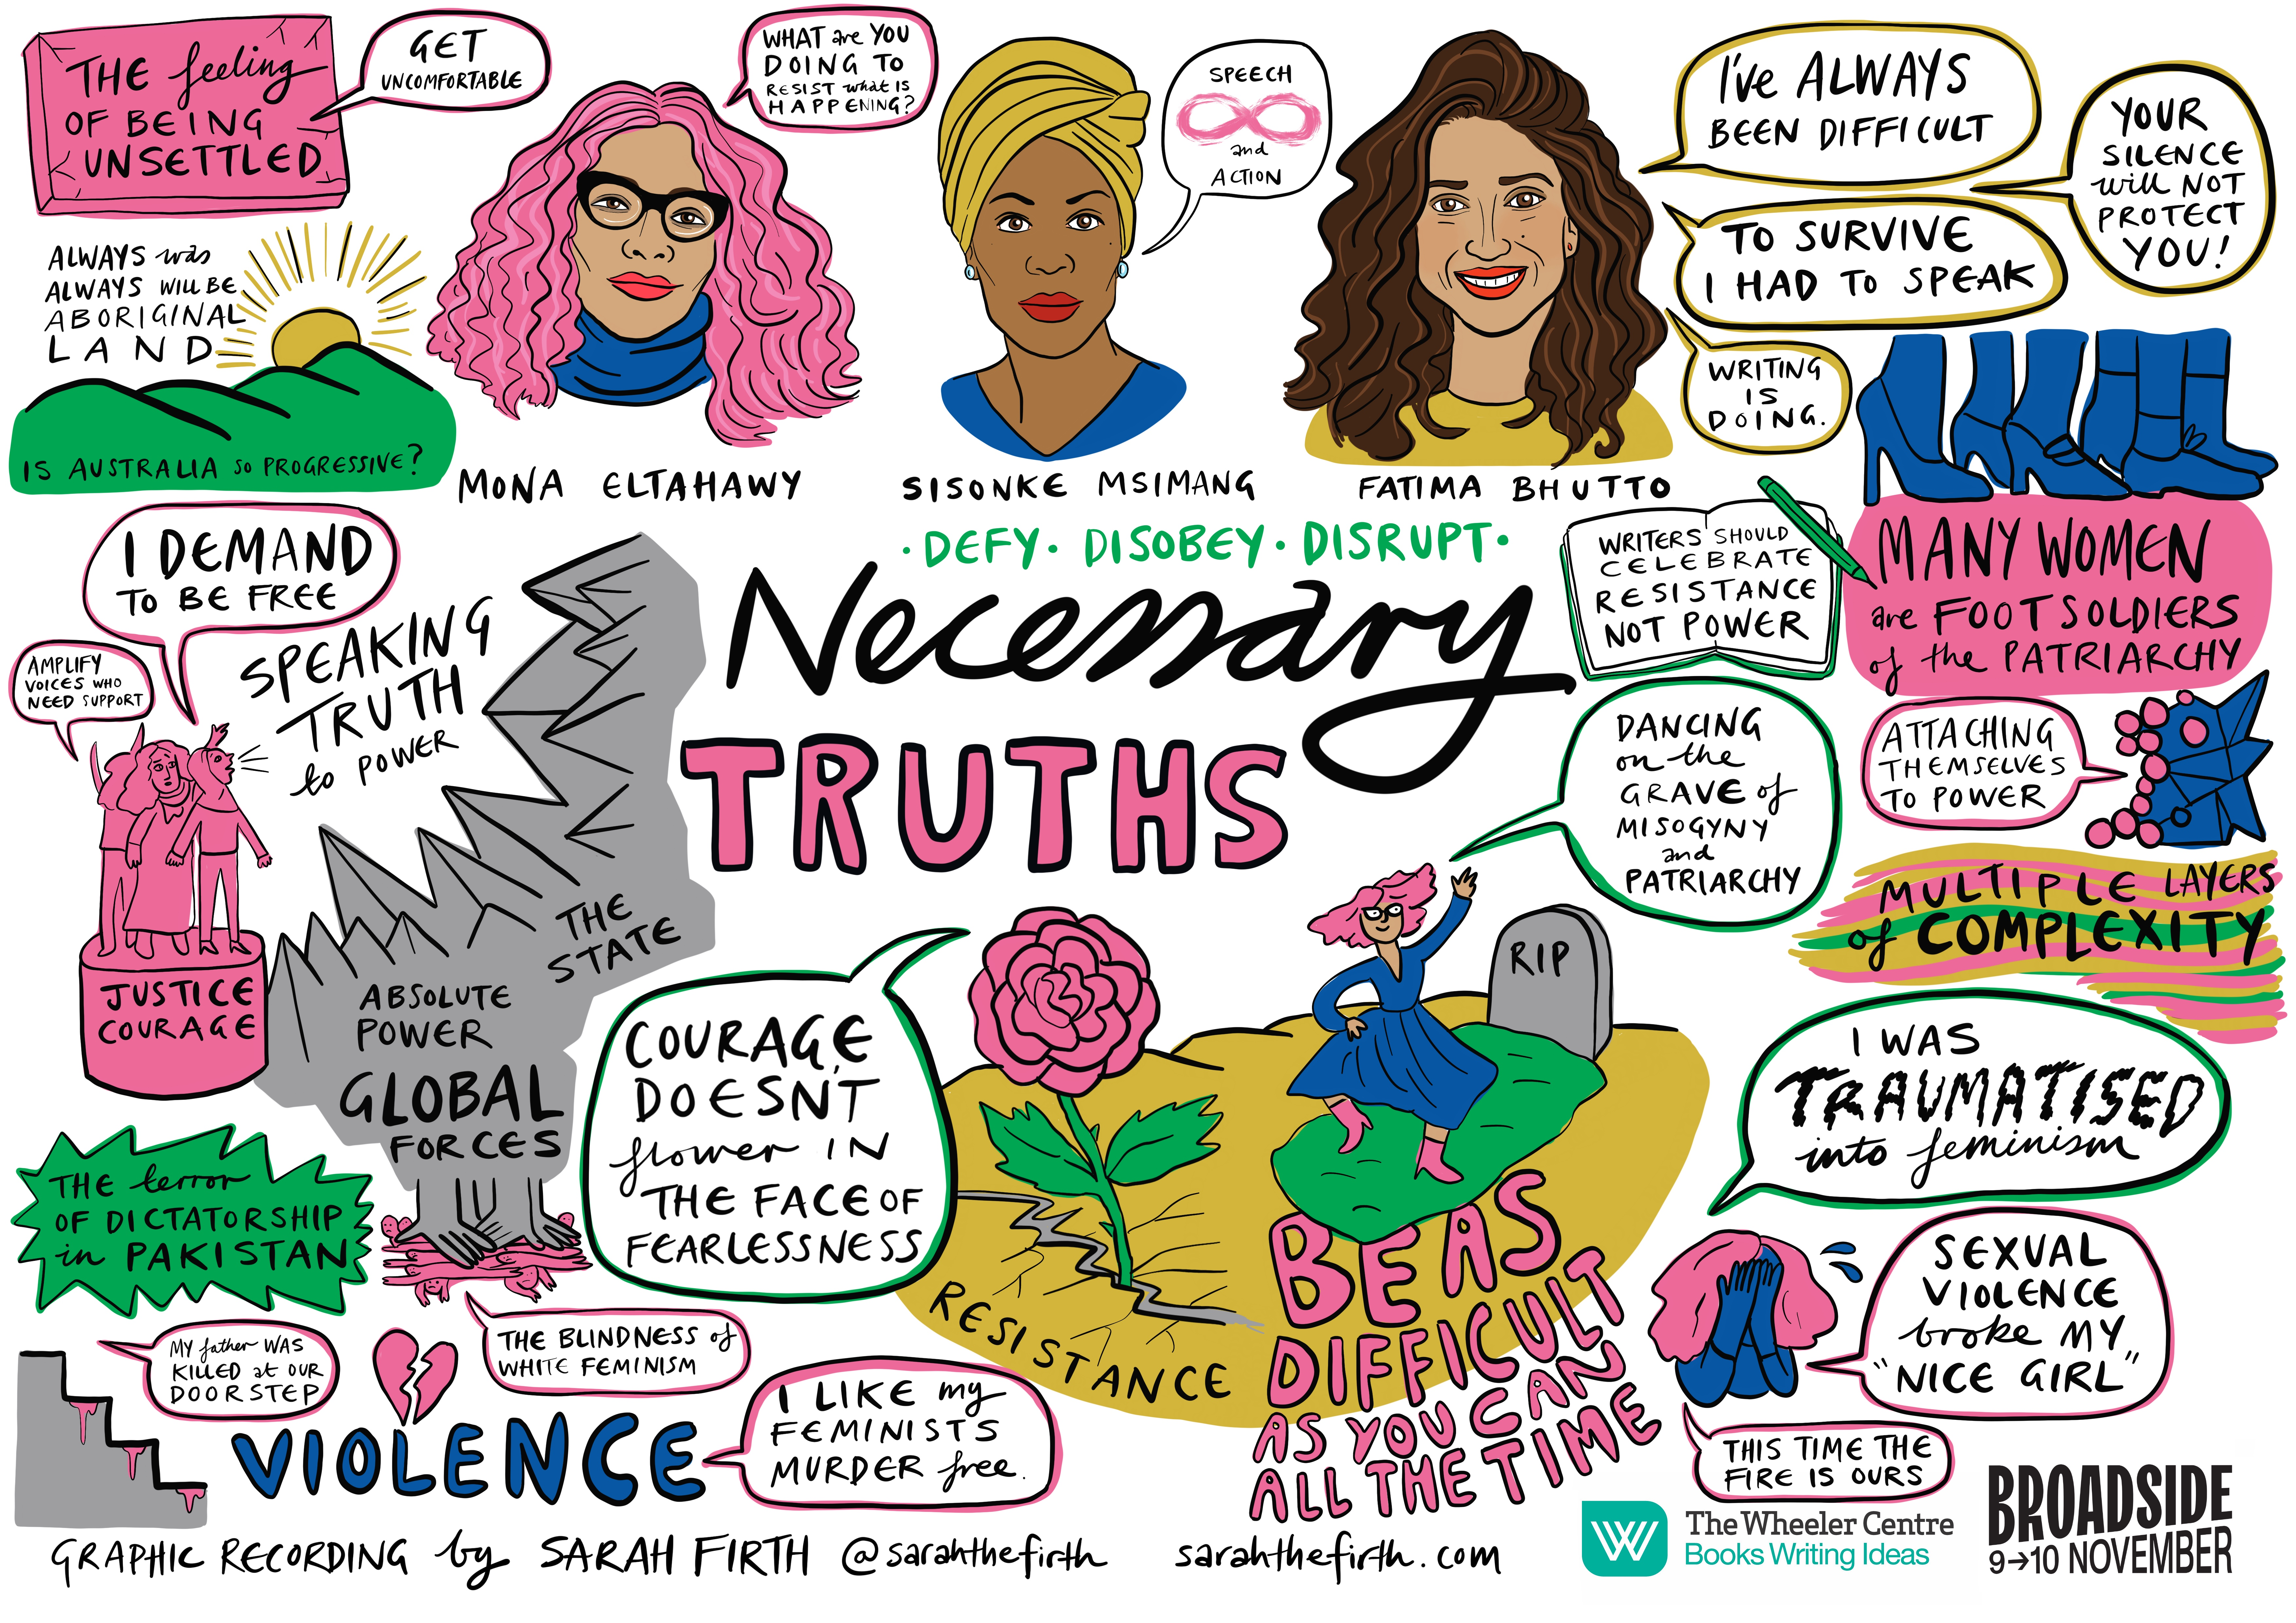 Illustrated portraits of Sisonke Msimang, Fatima Bhutto and Mona Eltahawy, with cartoons and quotes reflecting their onstage conversation